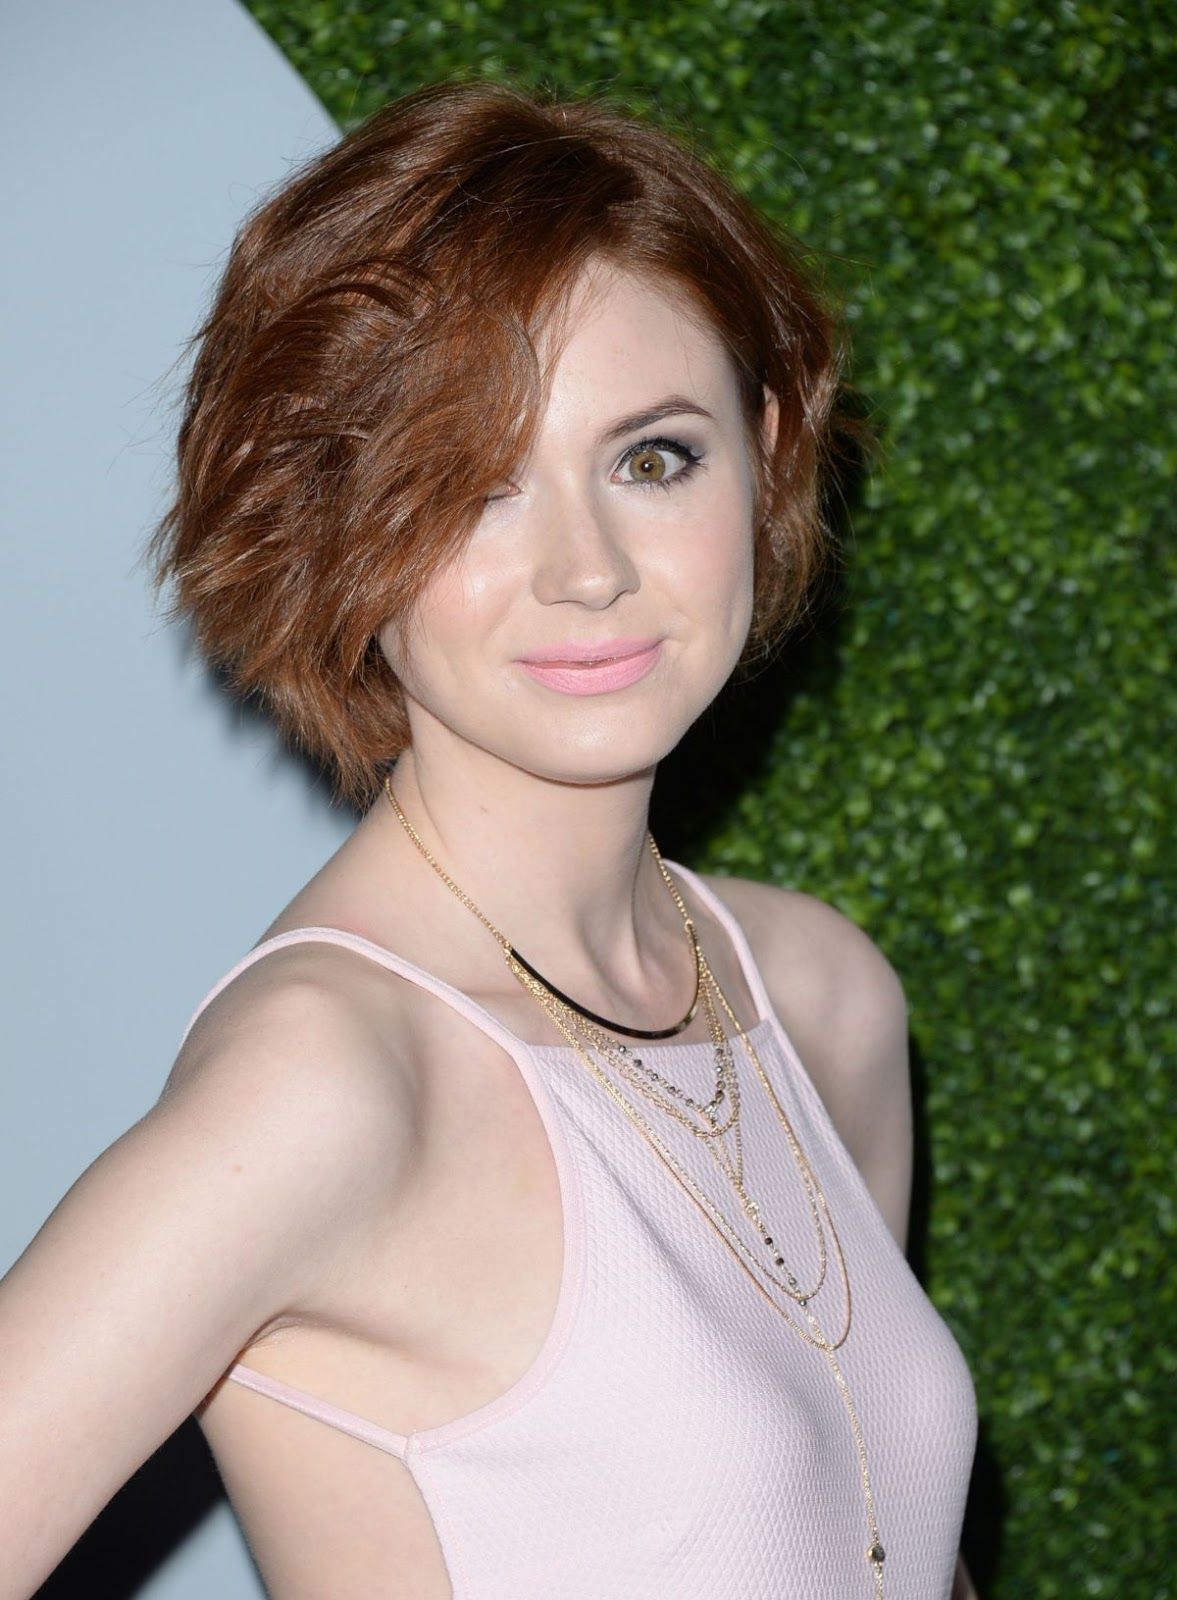 HD Photos of Jumanji actress Karen Gillan At GQ Men Of The Year Party In Los Angeles